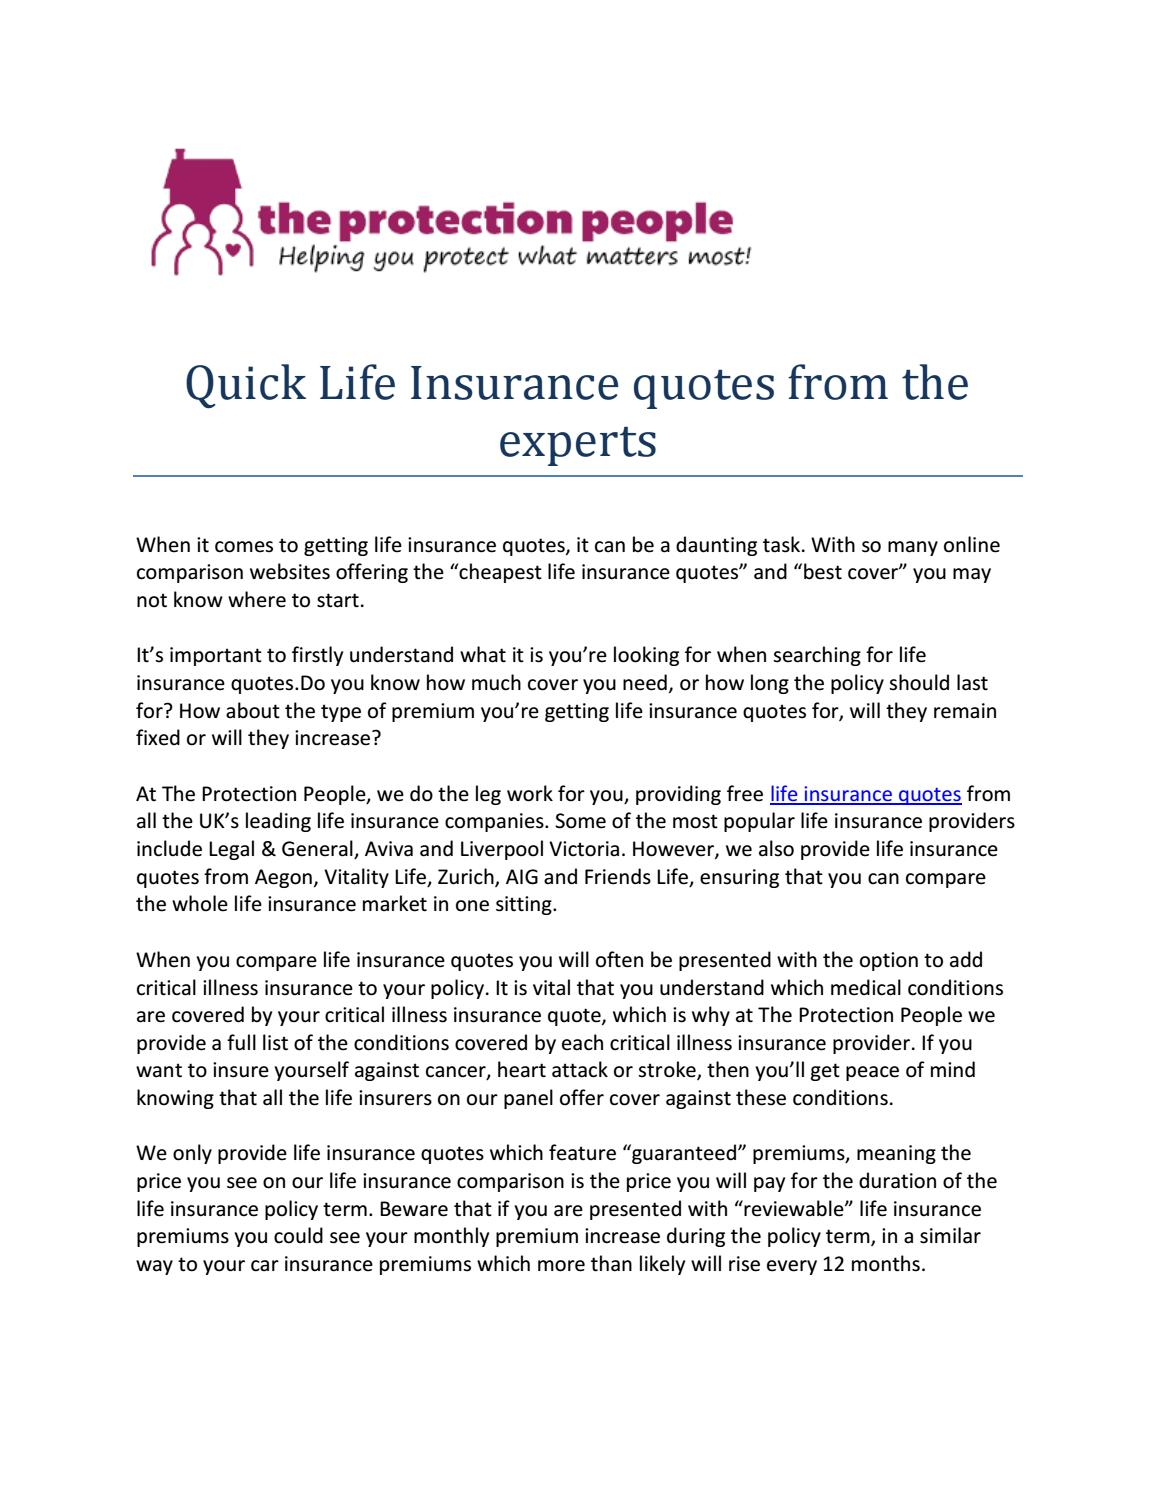 Comparing Life Insurance Quotes The Protection People  Quick Life Insurance Quotes From The